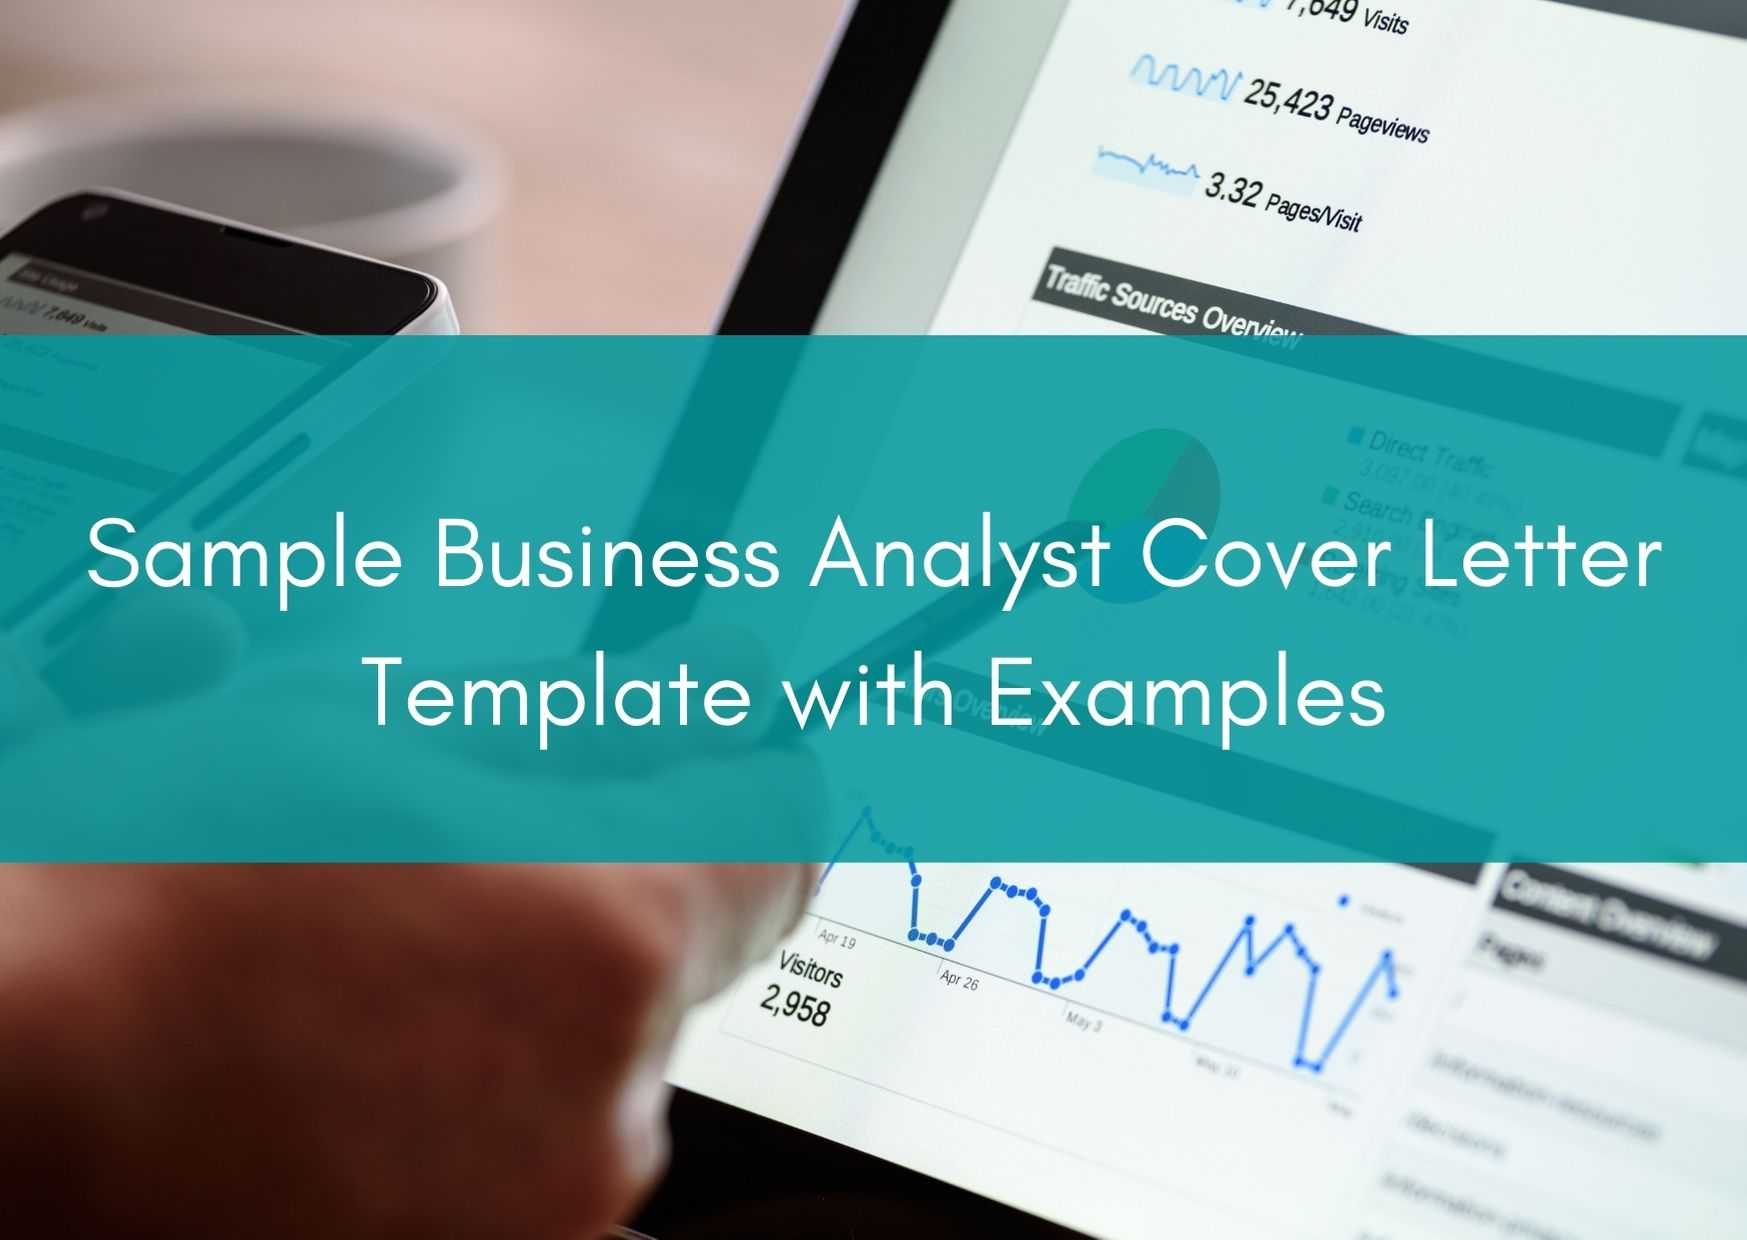 Sample Business Analyst Cover Letter Template with Examples